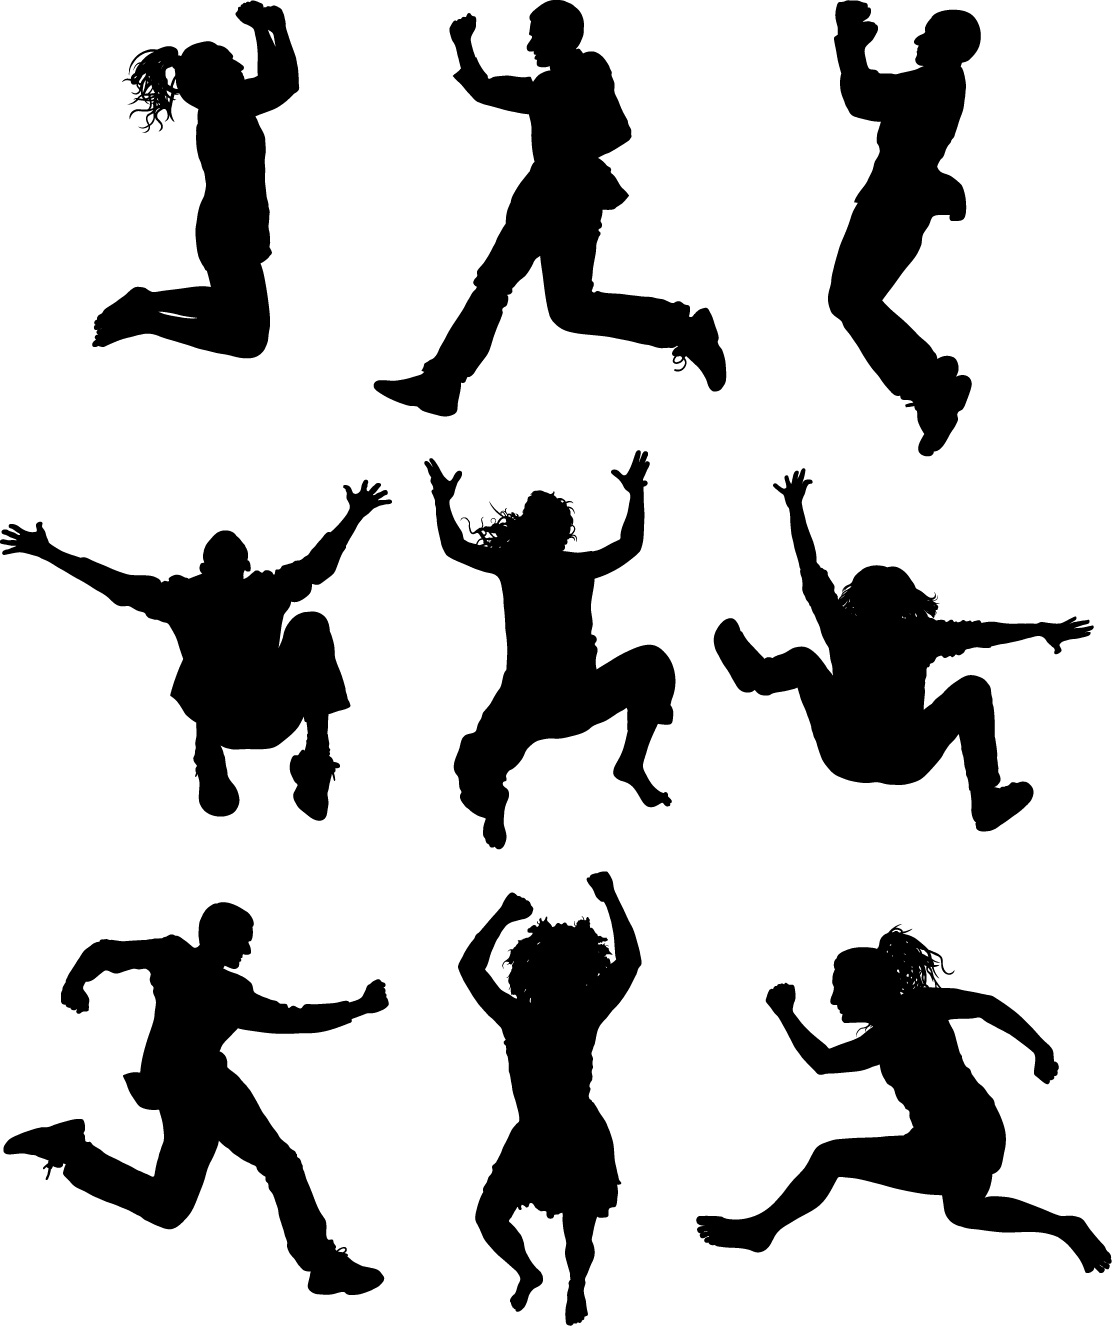 People free clip art. Humans clipart dancing